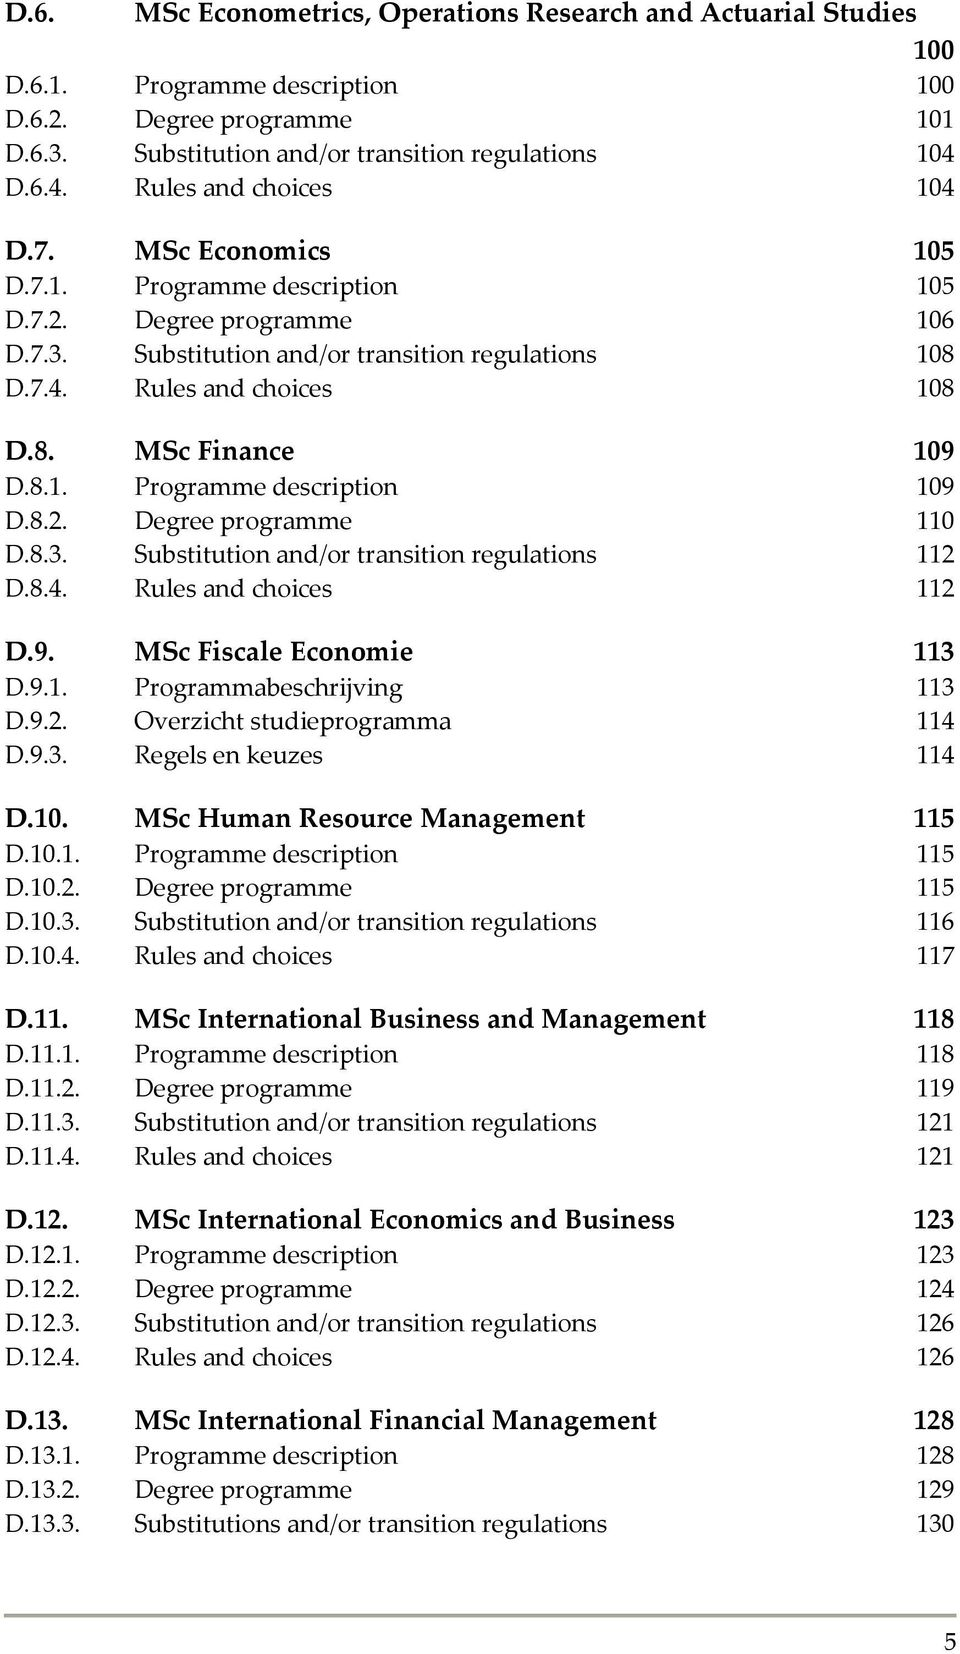 8.1. Programme description 109 D.8.2. Degree programme 110 D.8.3. Substitution and/or transition regulations 112 D.8.4. Rules and choices 112 D.9. MSc Fiscale Economie 113 D.9.1. Programmabeschrijving 113 D.